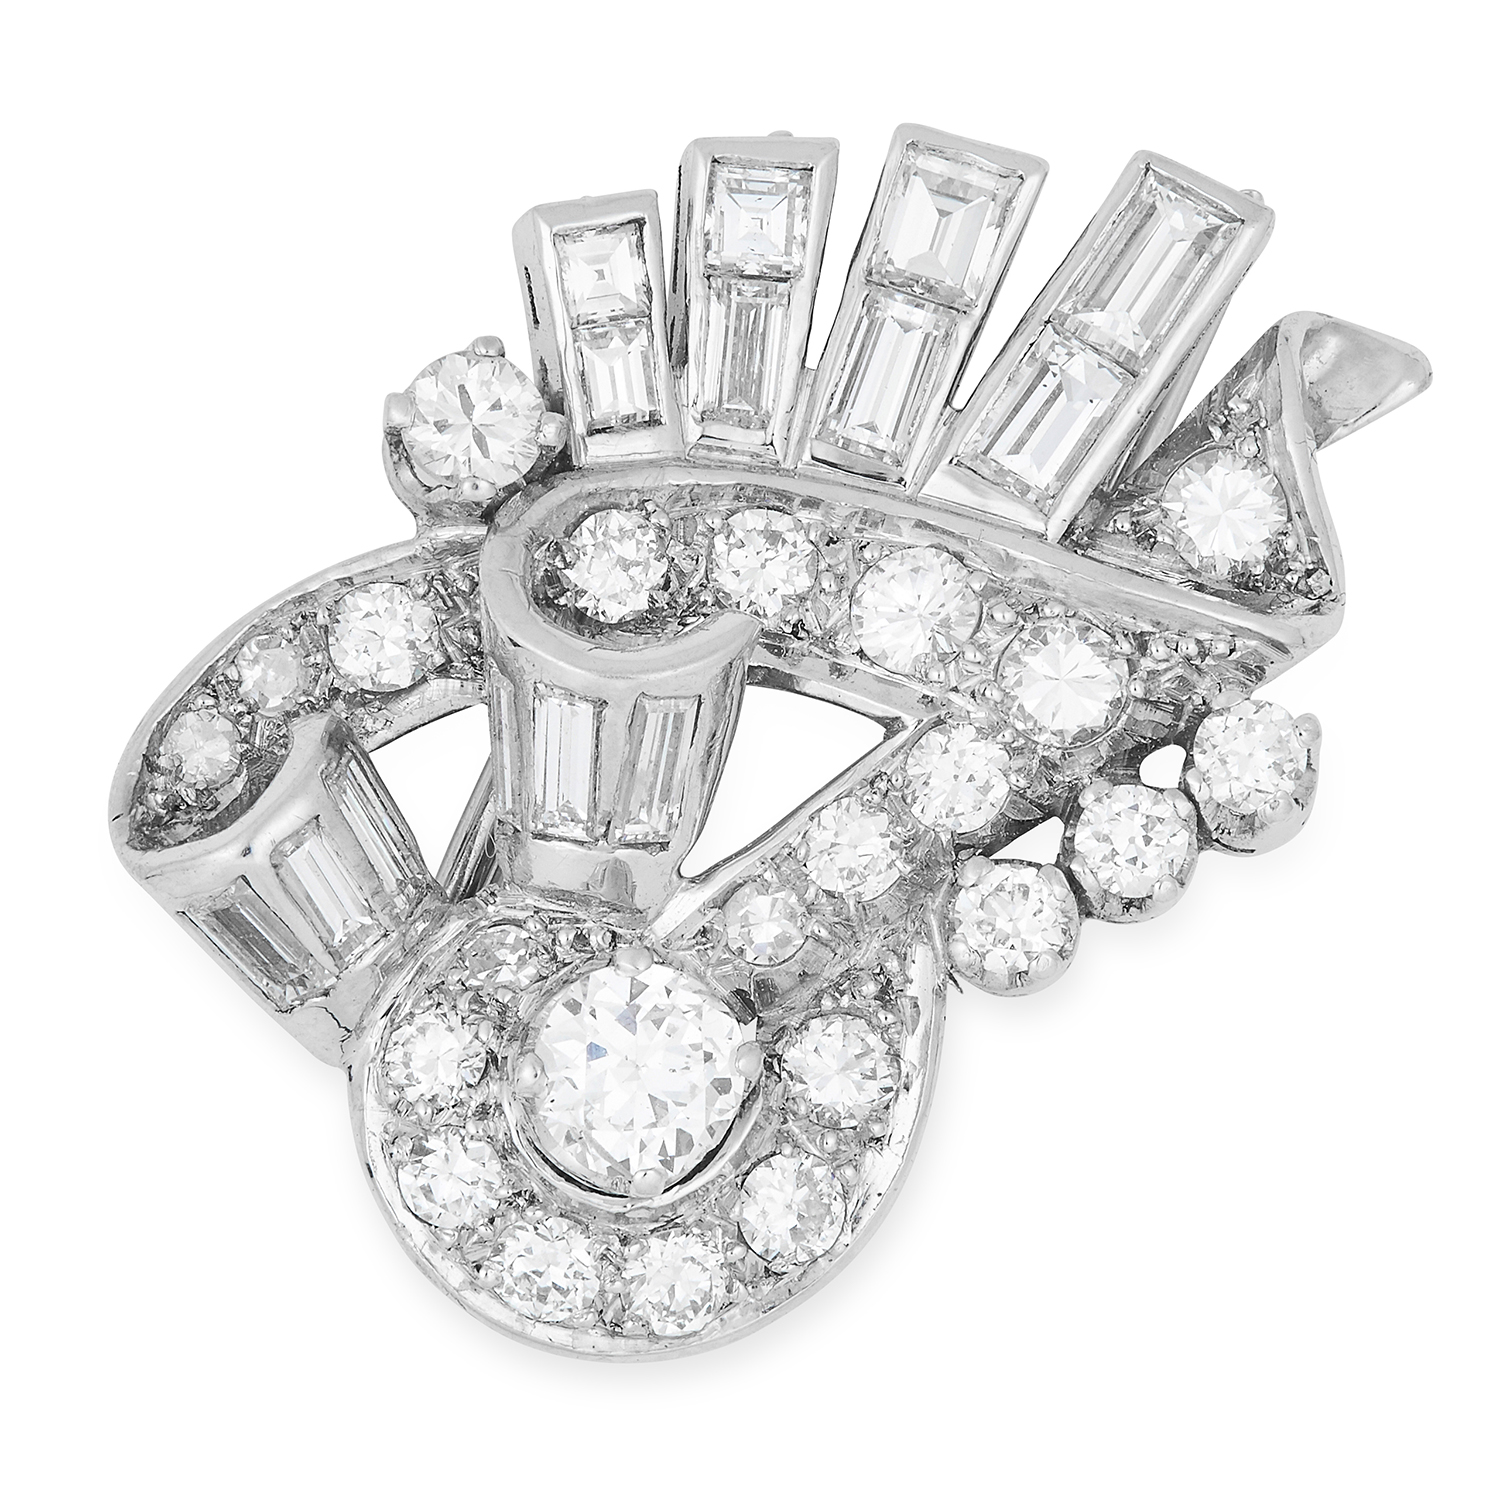 DIAMOND CLIP BROOCH set with round and baguette cut diamonds, 2.8cm, 8.4g.